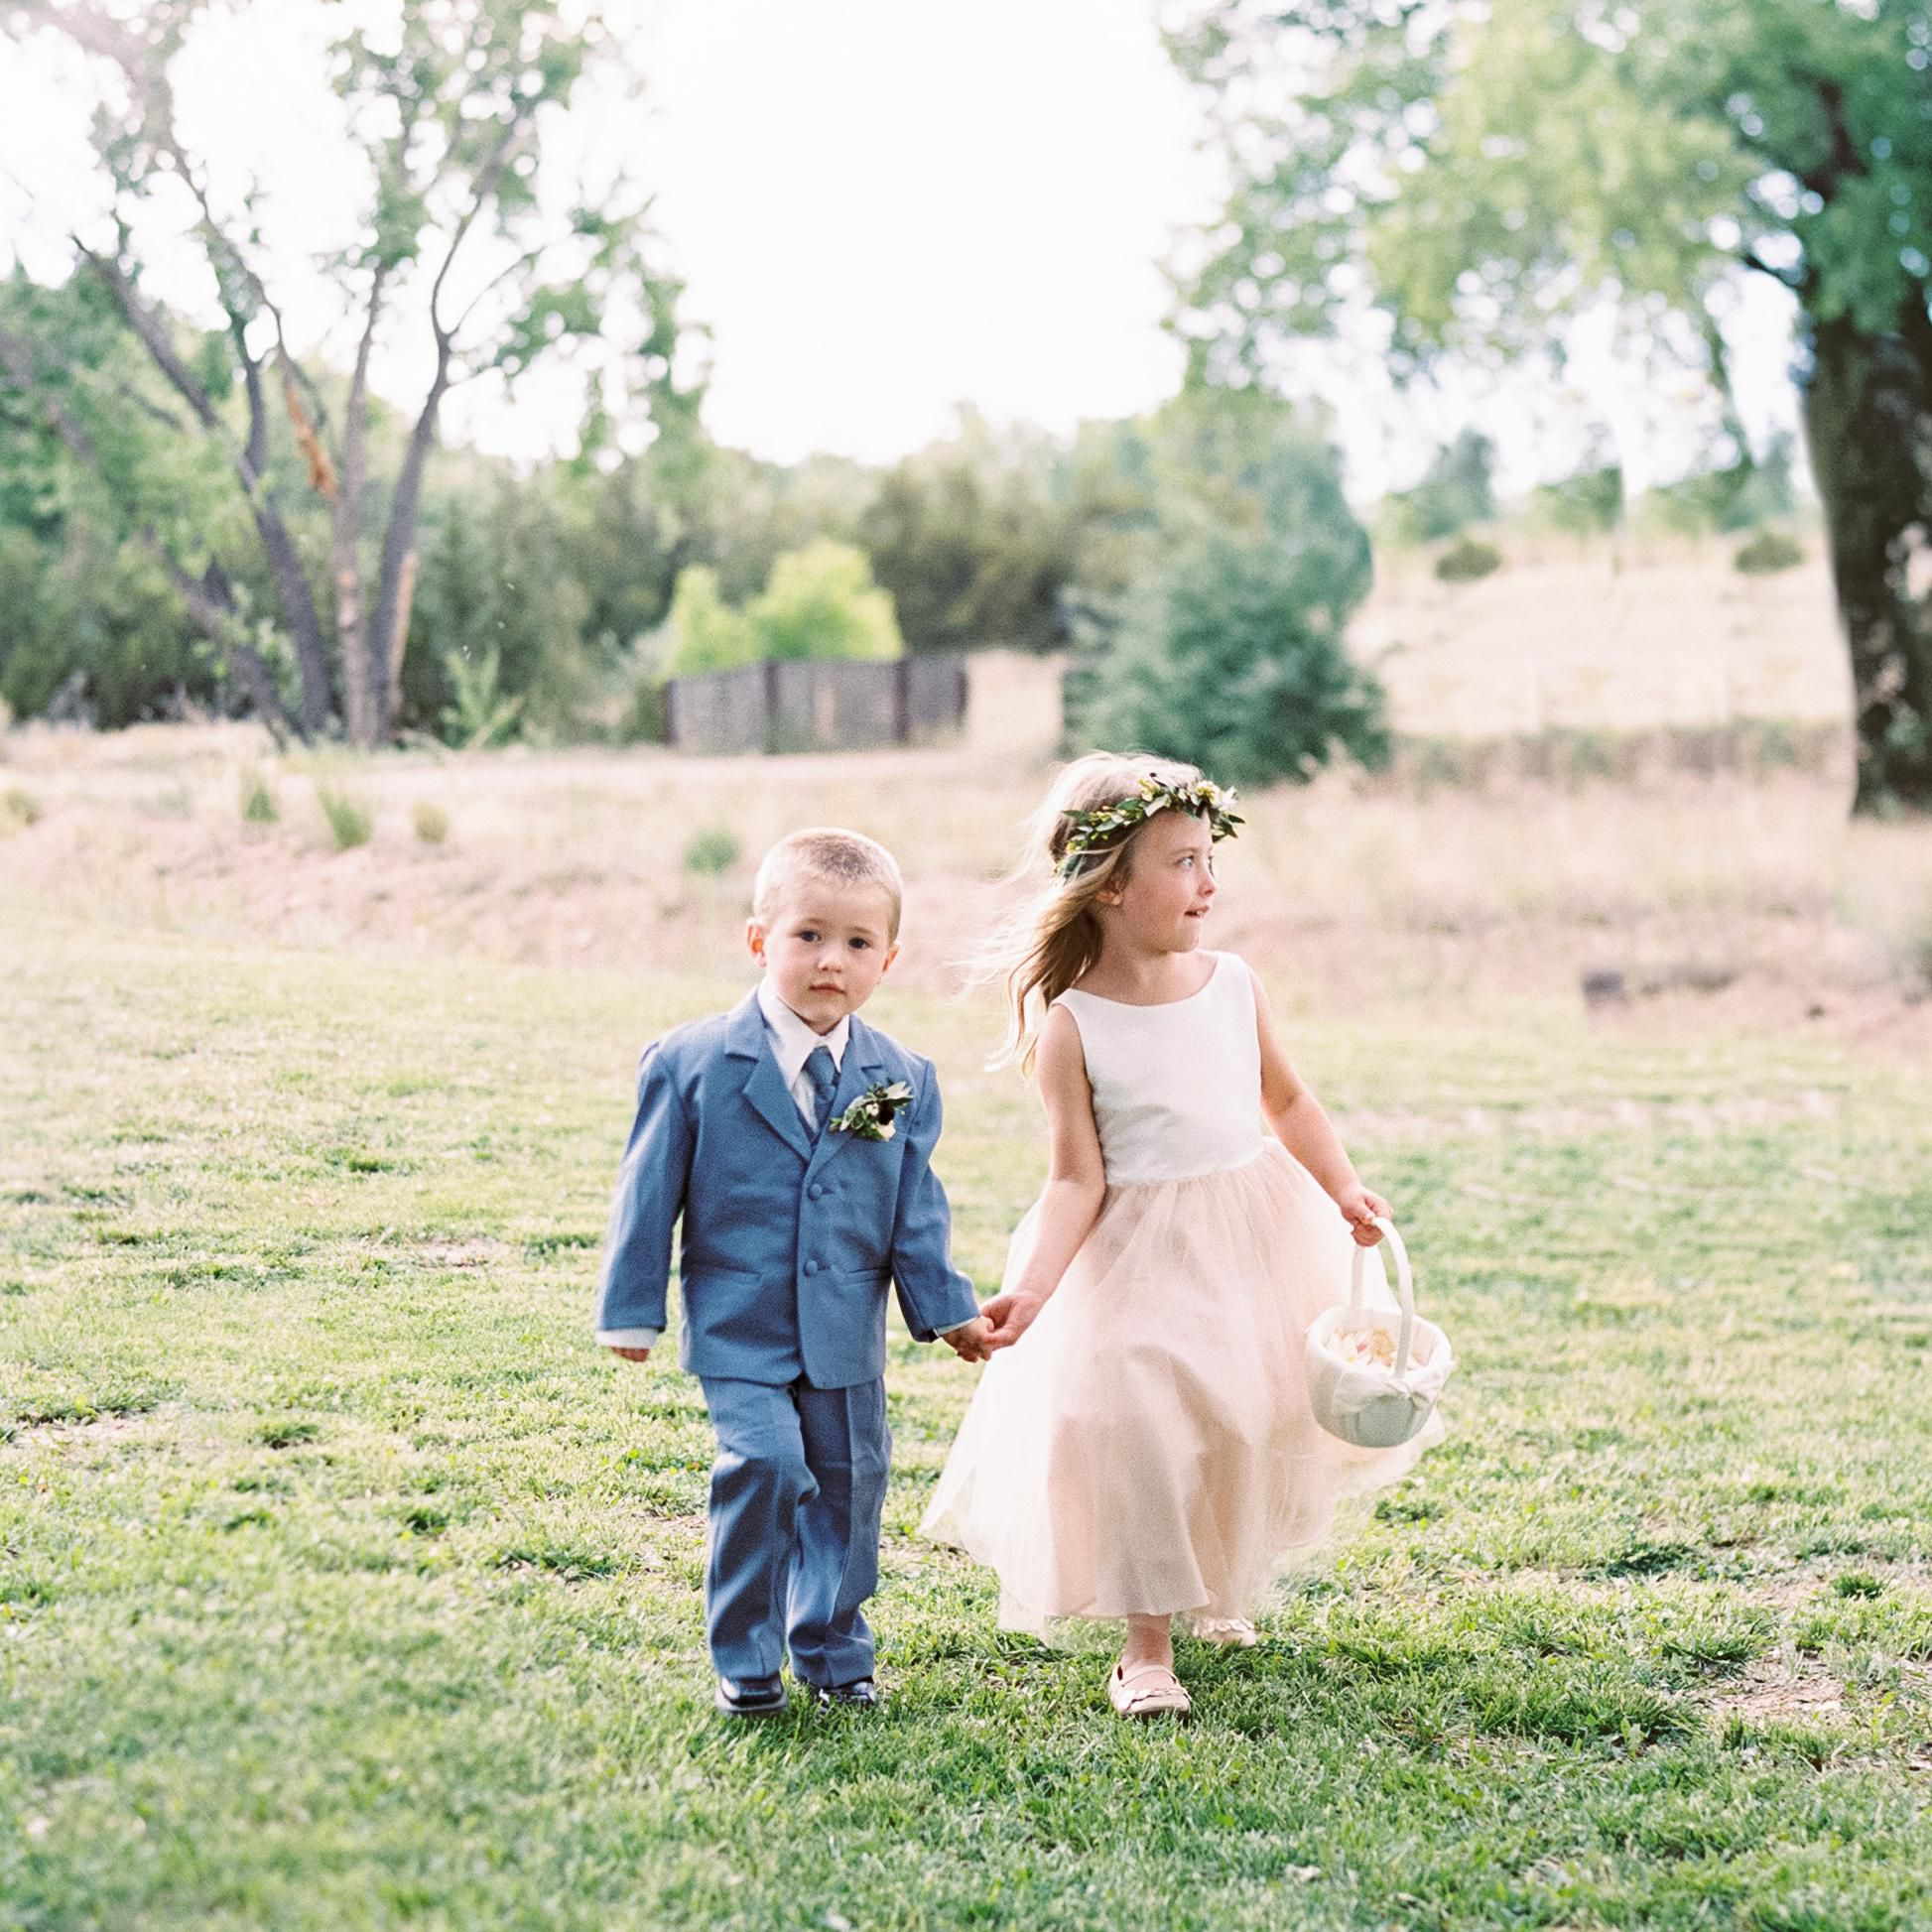 Ring Bearer Coloring Book for Celebrating Little Boy Will You Be My Ring Bearer